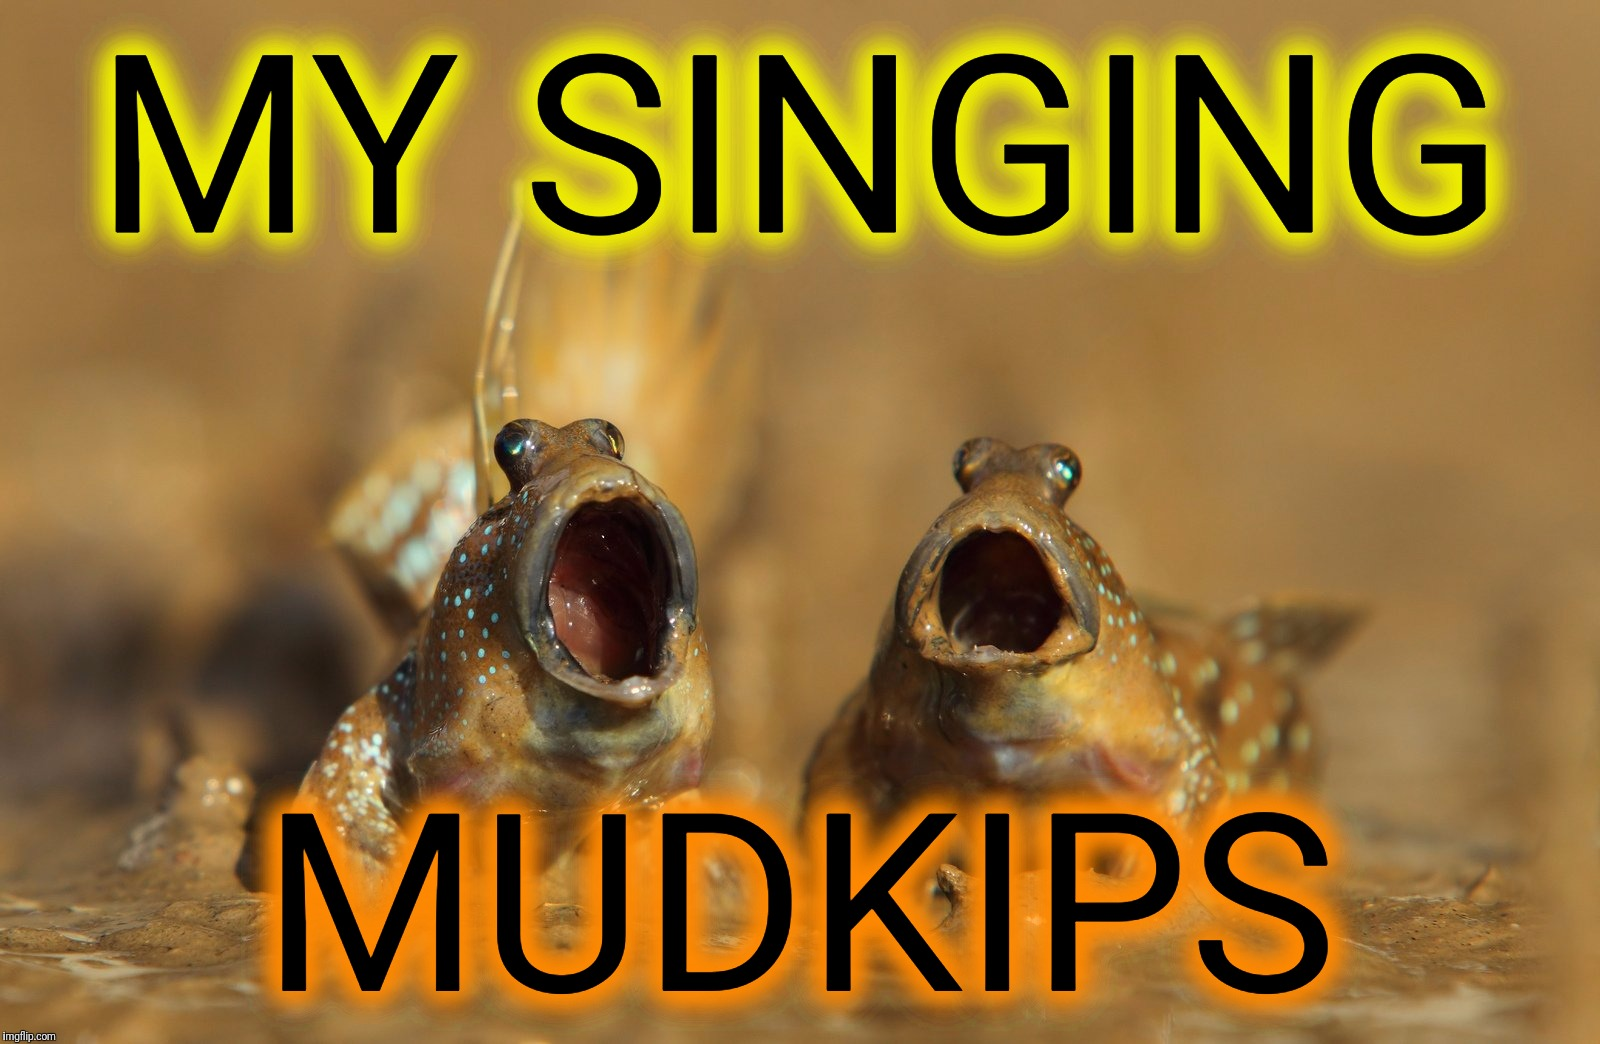 Bum, bum bum, ba da da... | MY SINGING MUDKIPS | image tagged in memes,my singing monsters,mudkip | made w/ Imgflip meme maker